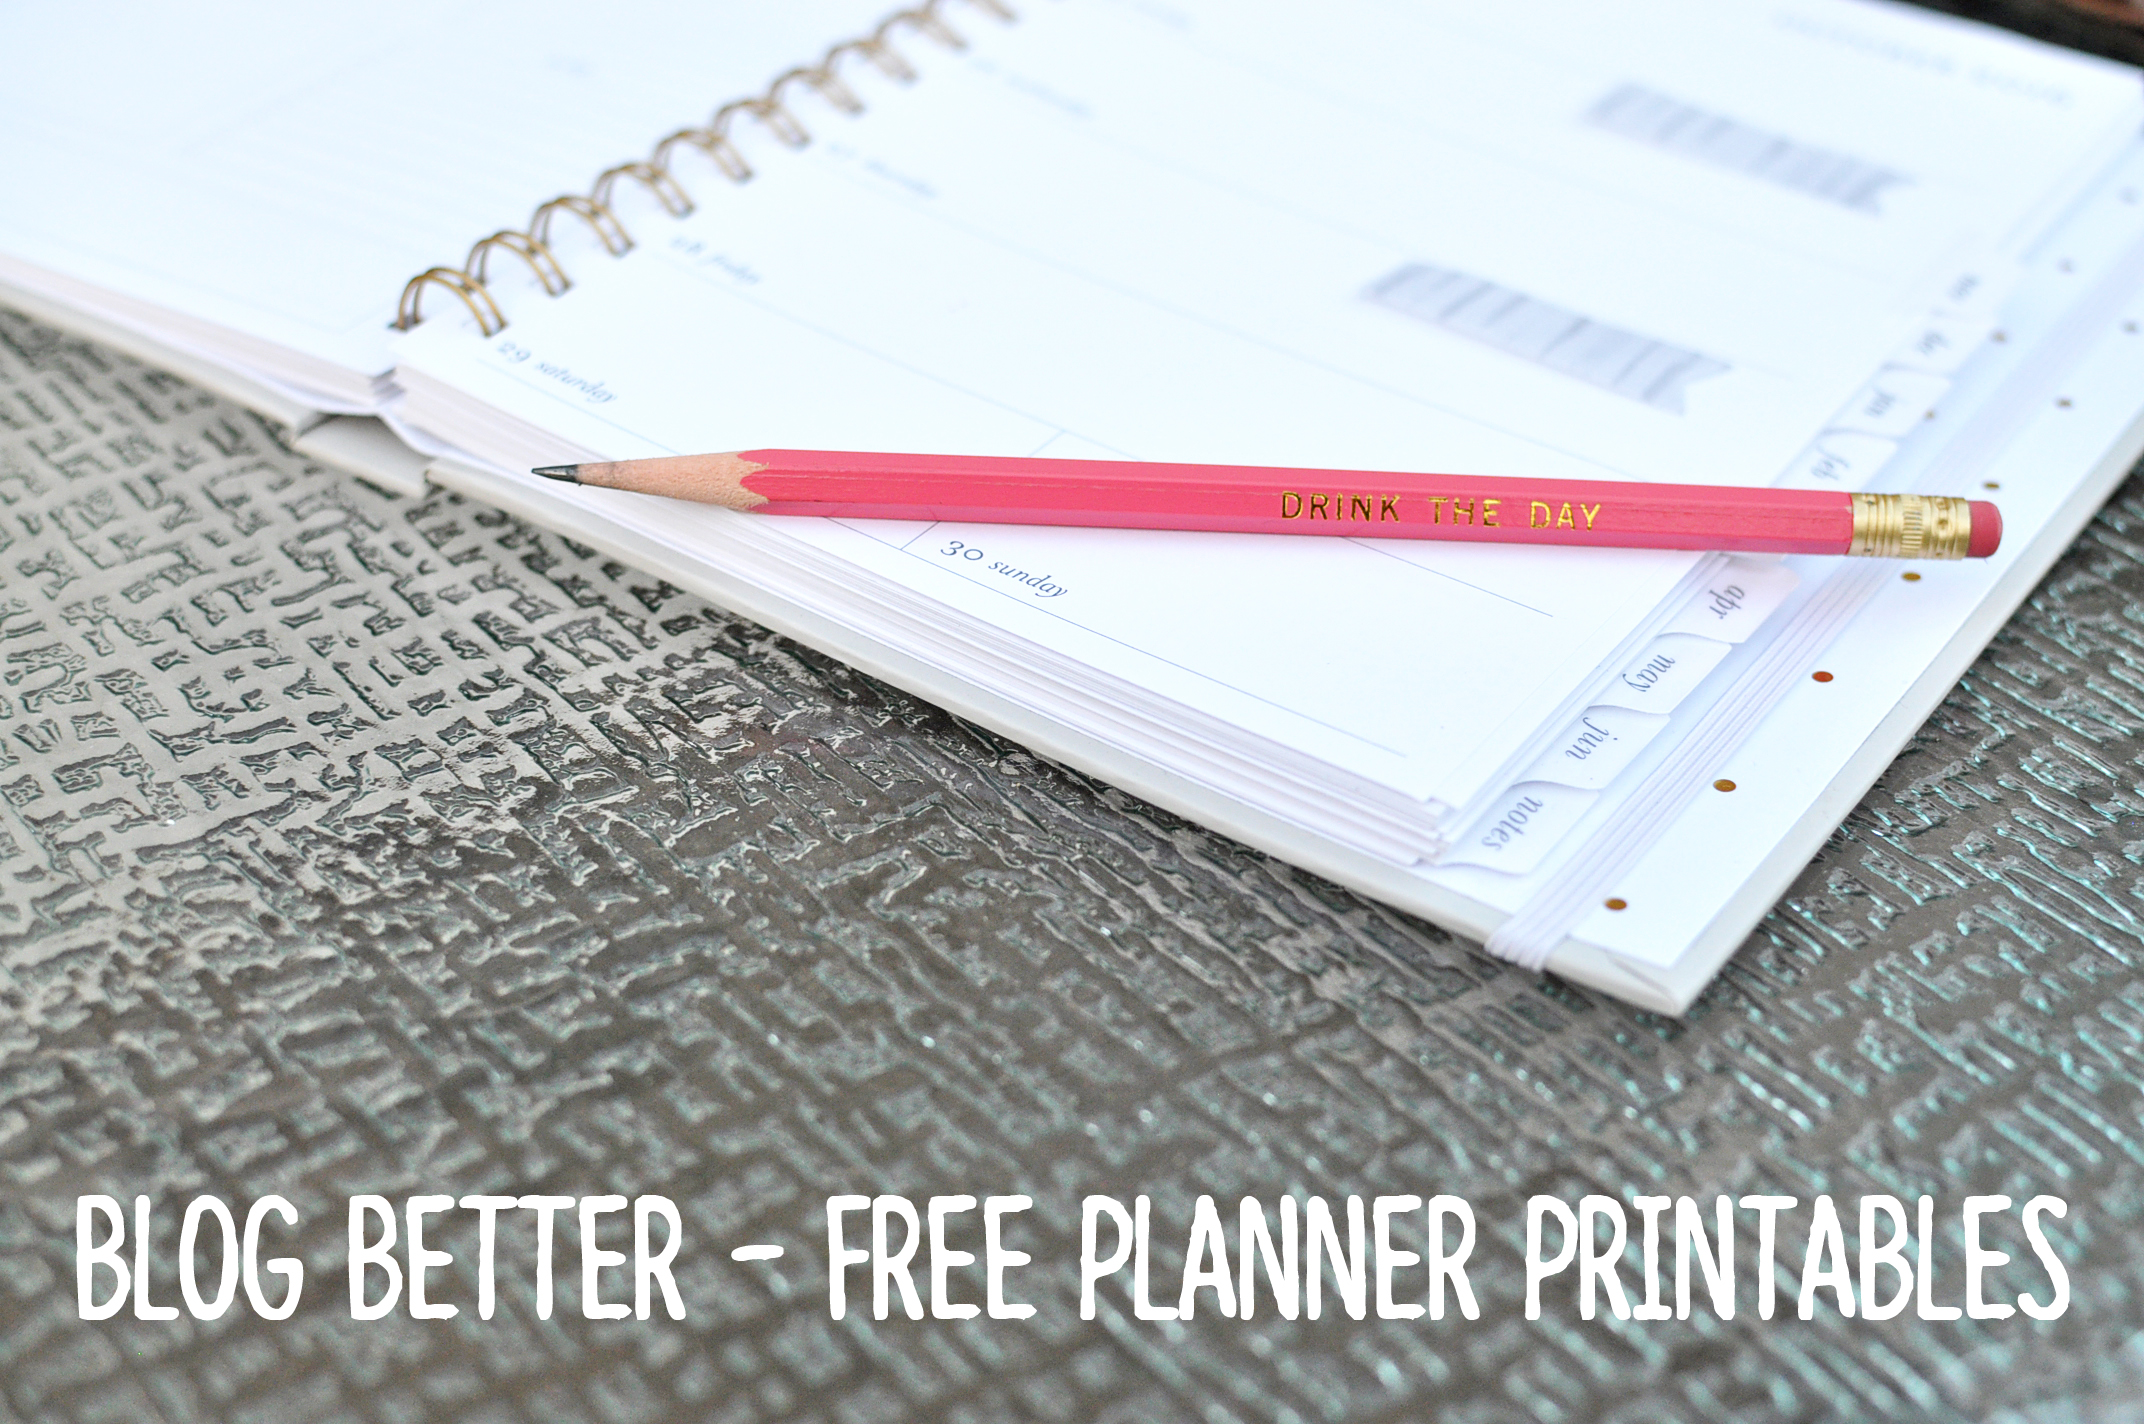 Blog Better: Free Planner Printables | Drink the Day